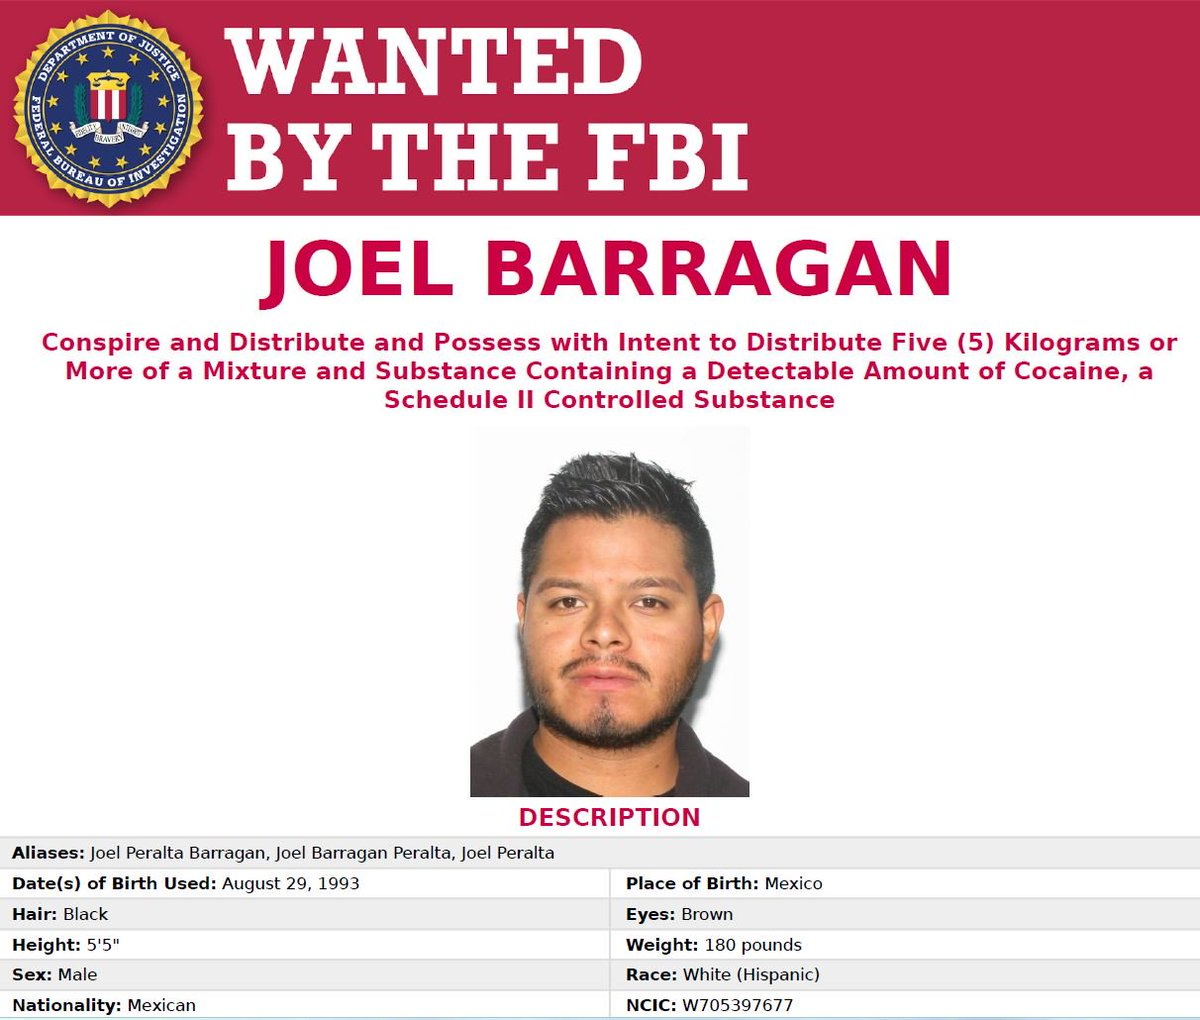 Joel Barragan, an alleged member of a Mexican-based drug cartel, is #wanted by the #FBI for his alleged role in a Transnational Criminal Organization responsible for importing and distributing large quantities of cocaine in the United States. Seen him? fbi.gov/wanted/cei/joe…